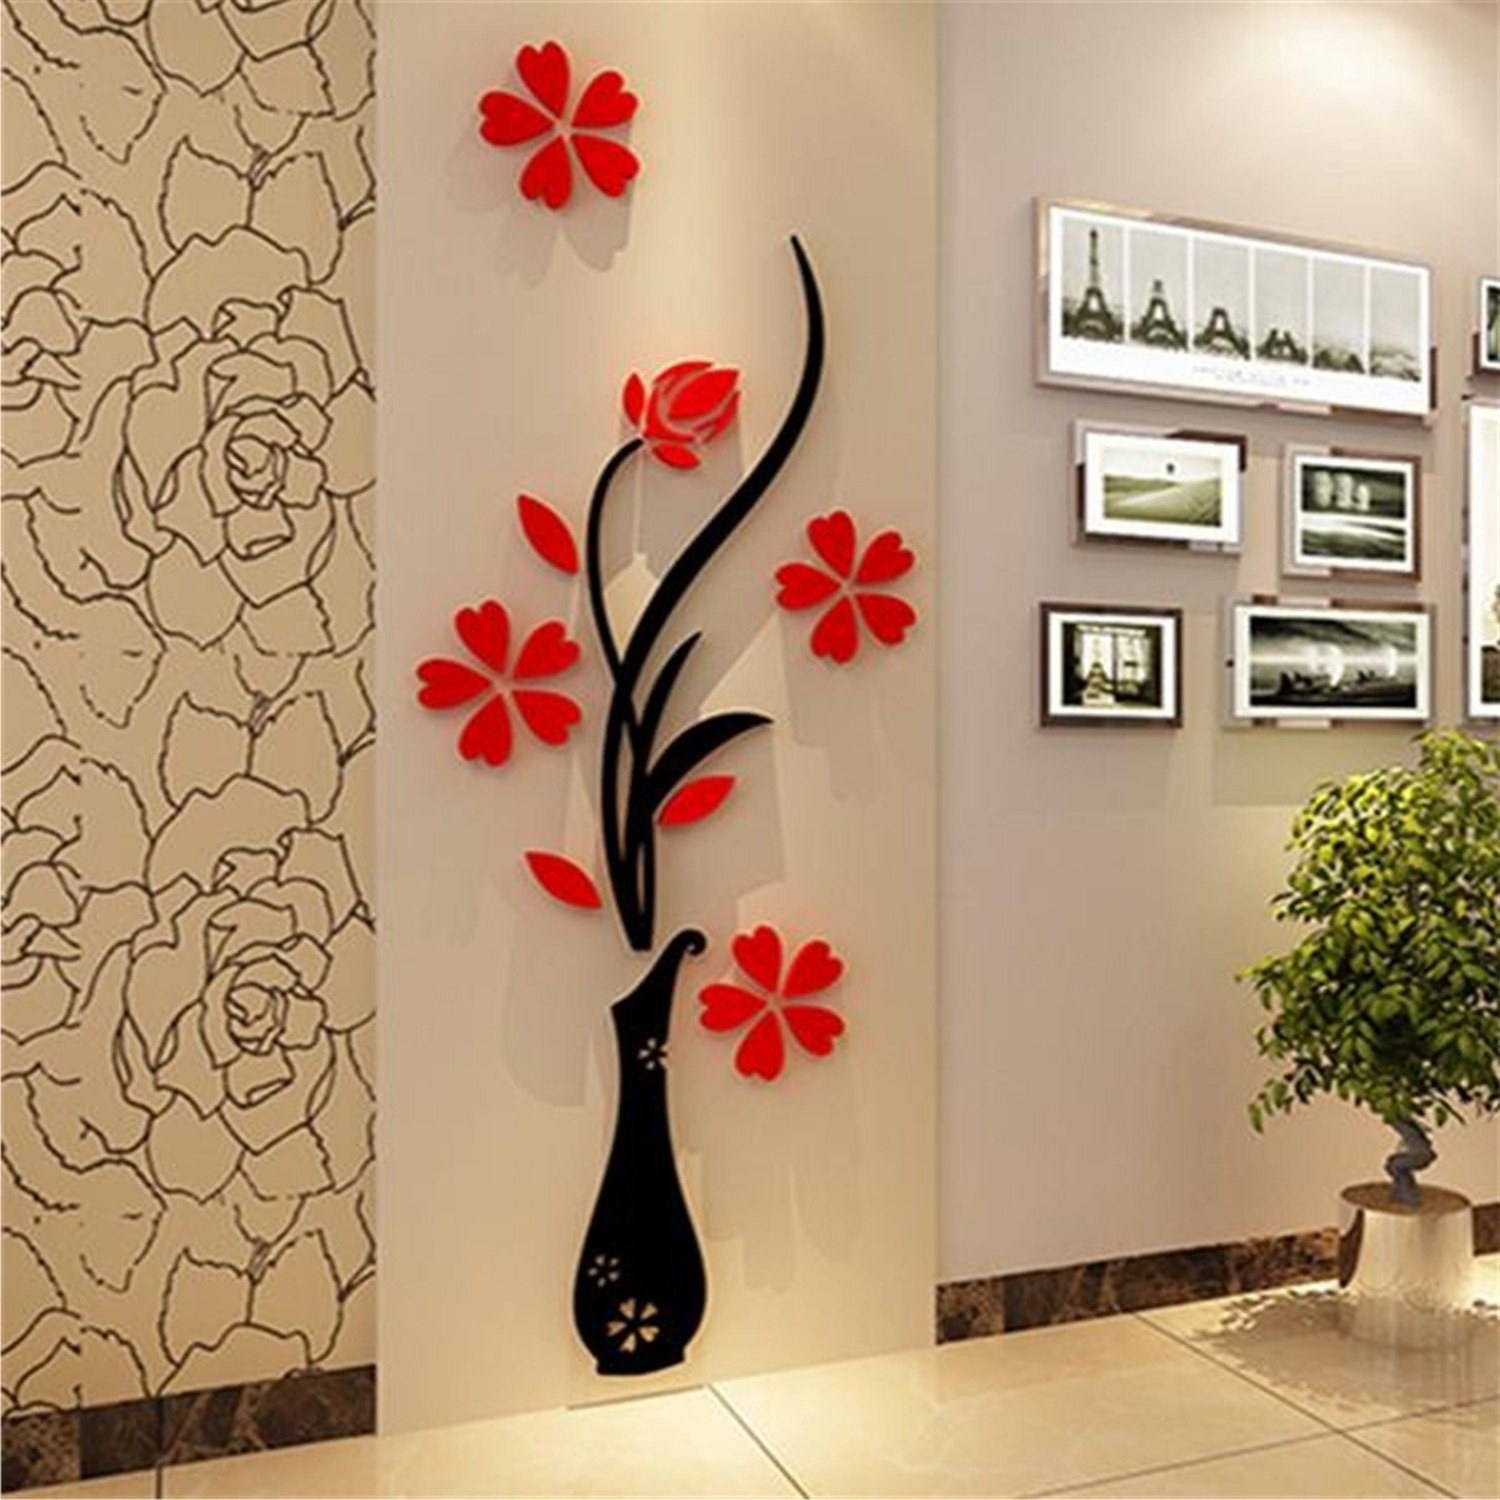 Décoration Murale En Relief Top 15 Of Diy 3d Wall Art Decor